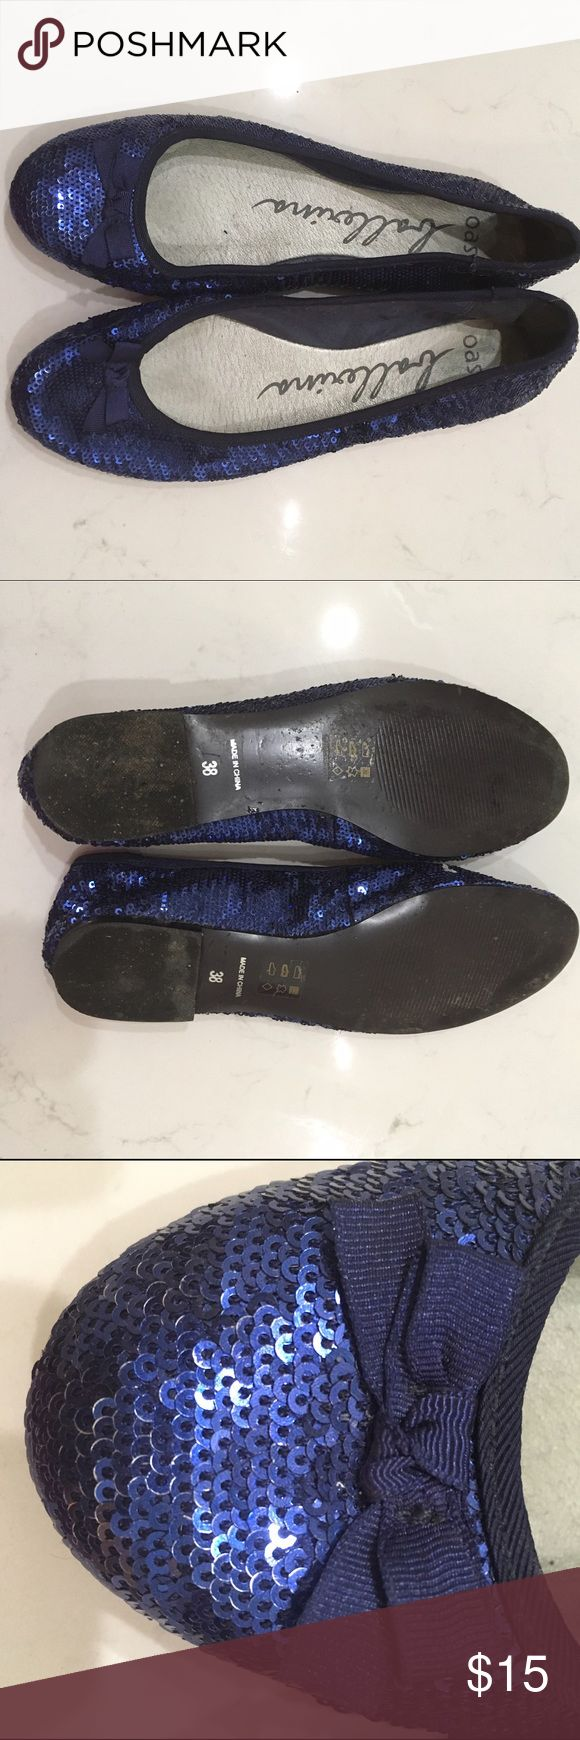 GLITZY BLUE SEQUIN BALLET FLATS. SIZE 8 PREVIOUSLY OWNED. WOVEN BOW DETAIL. oasis Shoes Flats & Loafers